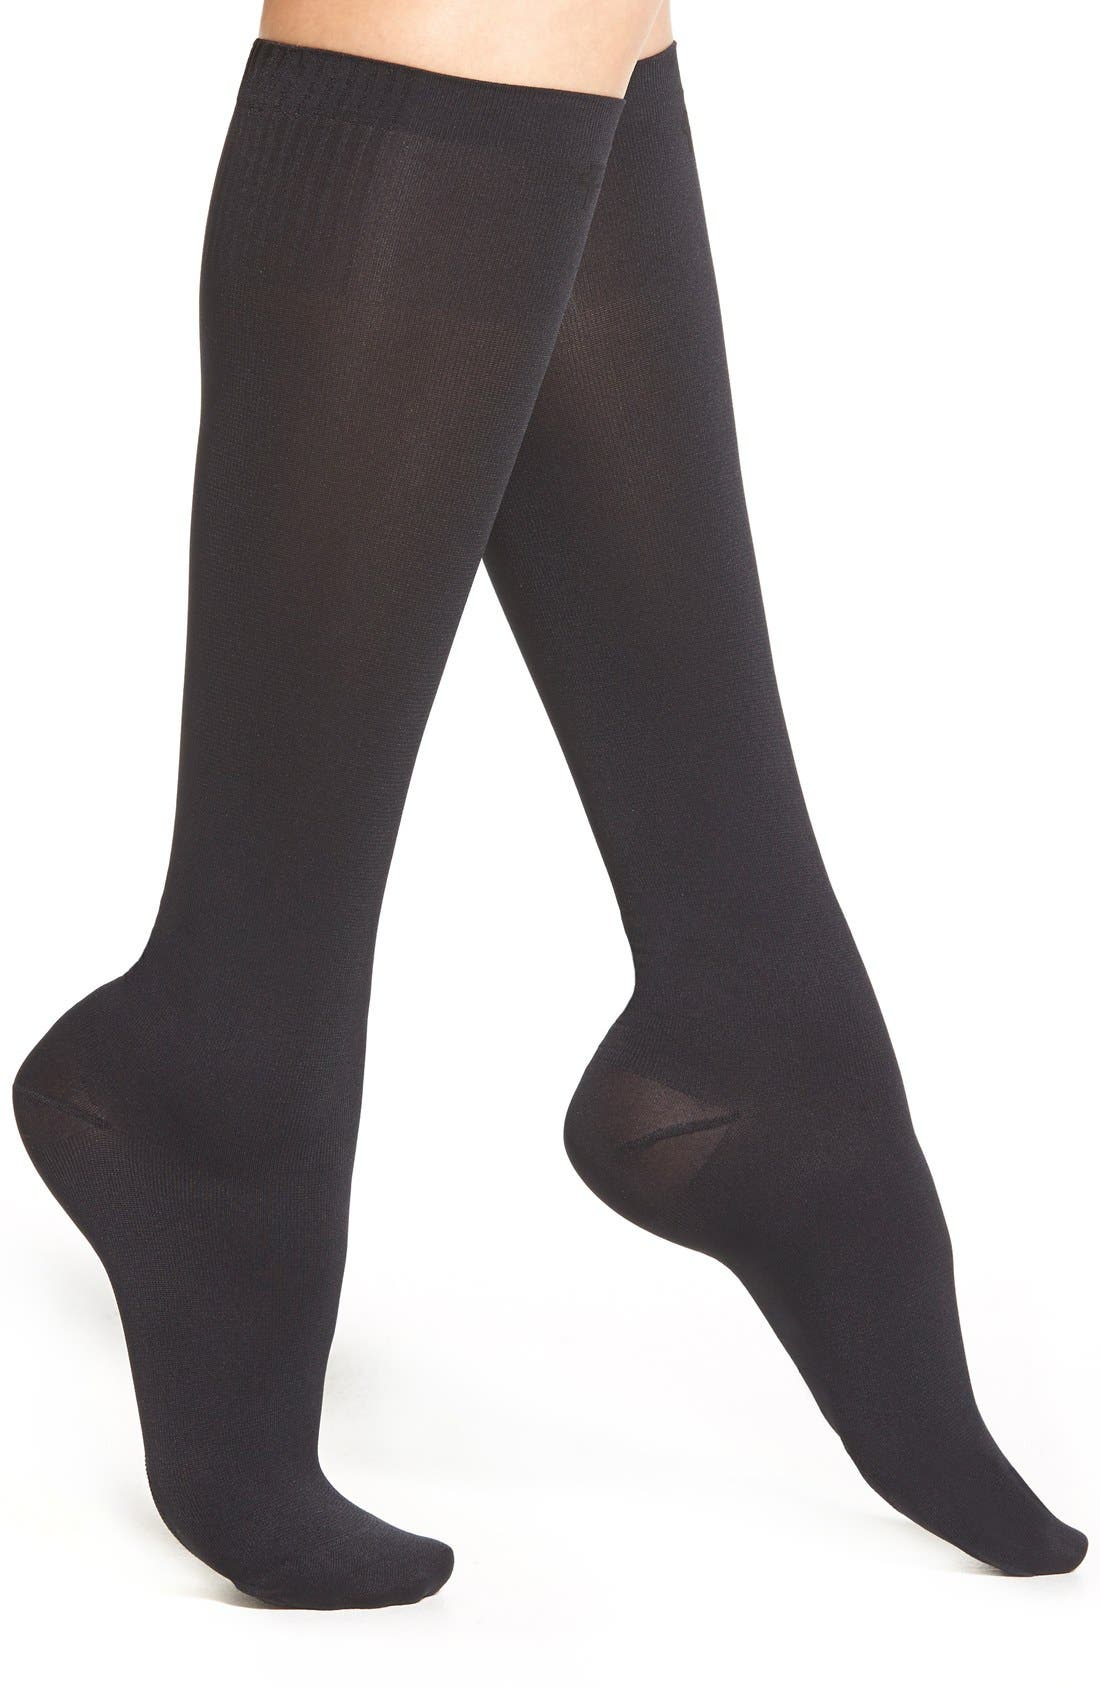 Main Image - Pretty Polly 'On the Go' CompressionTrouserSocks